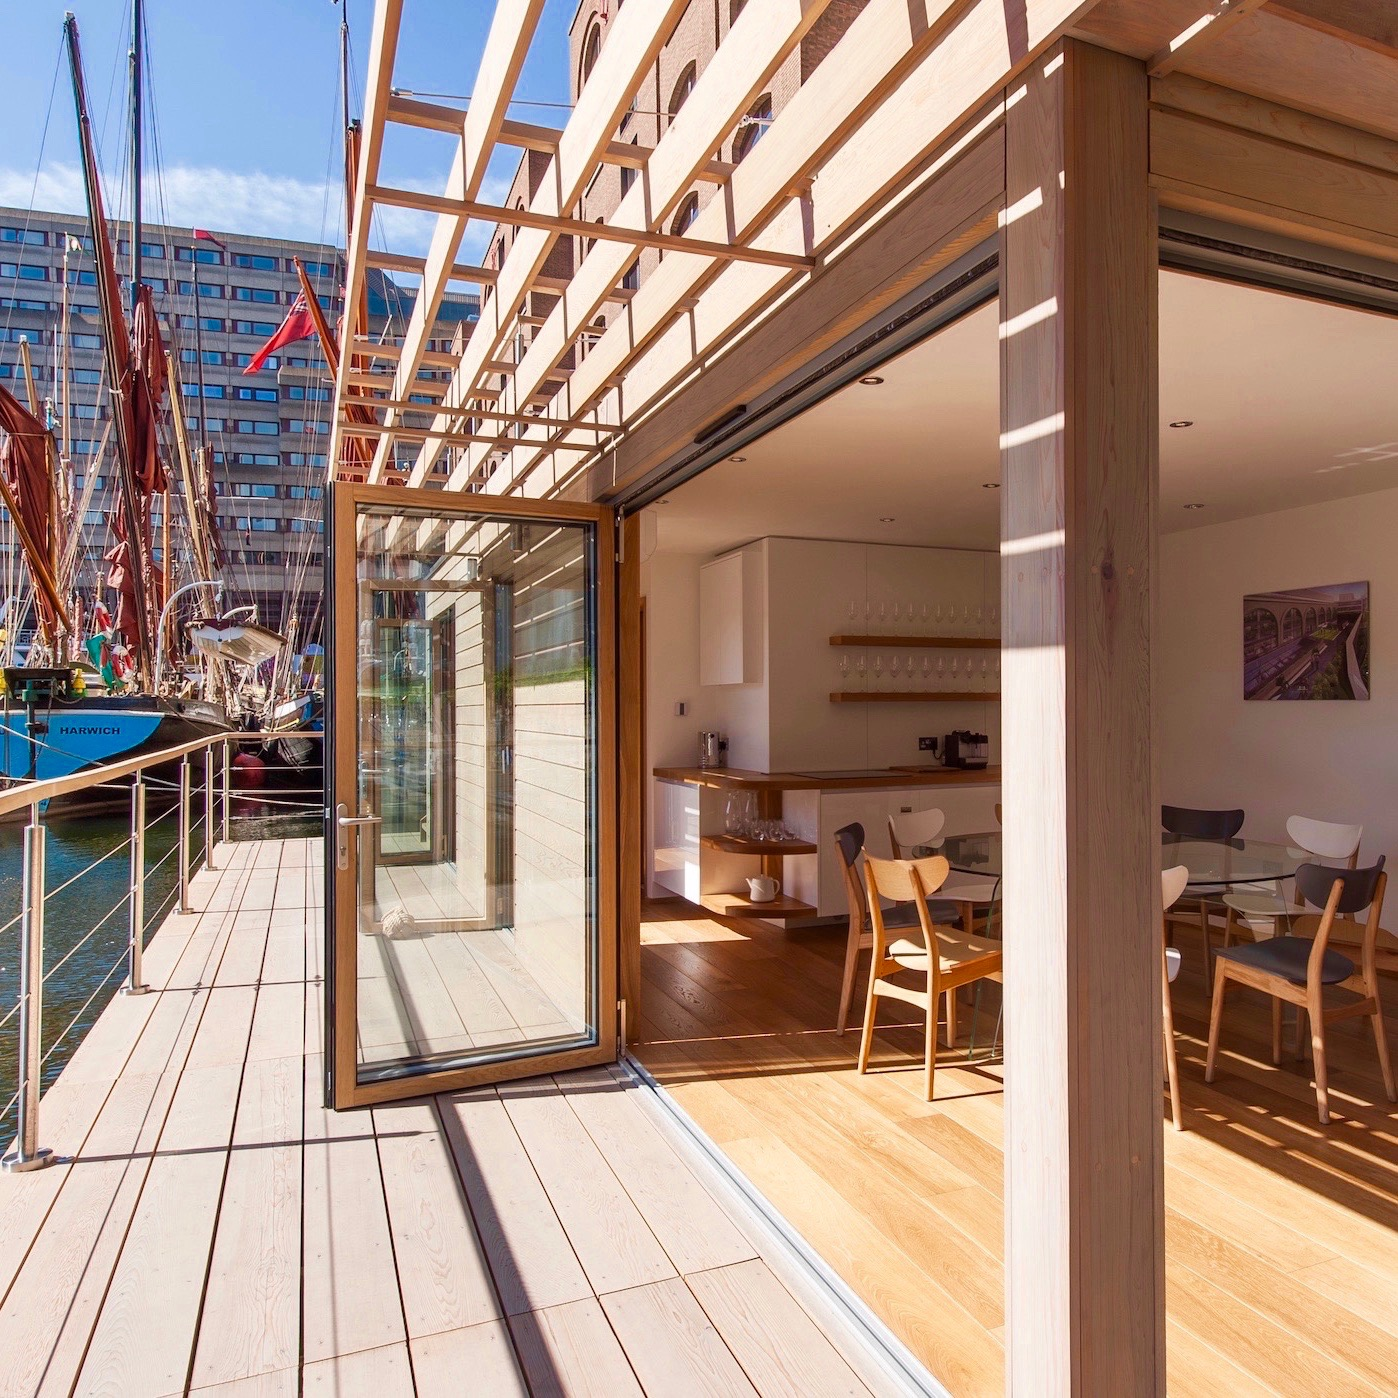 Floating office for creatives with Thames Barges.jpg